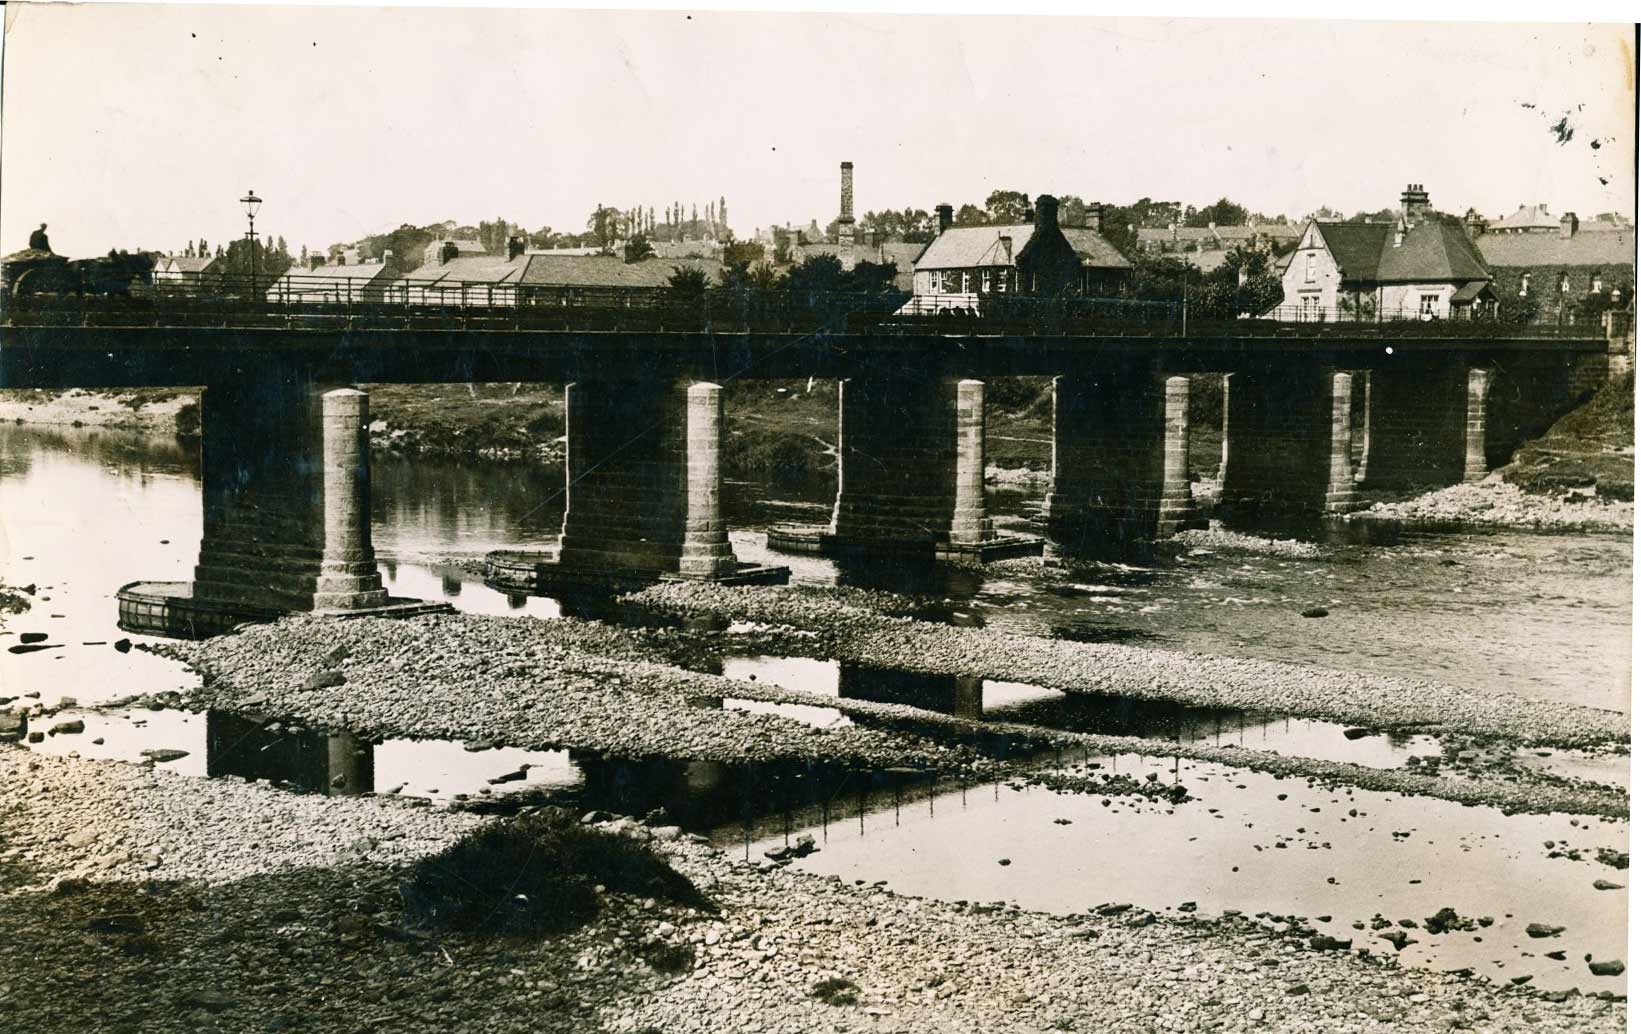 1920 View of Wylam Bridge